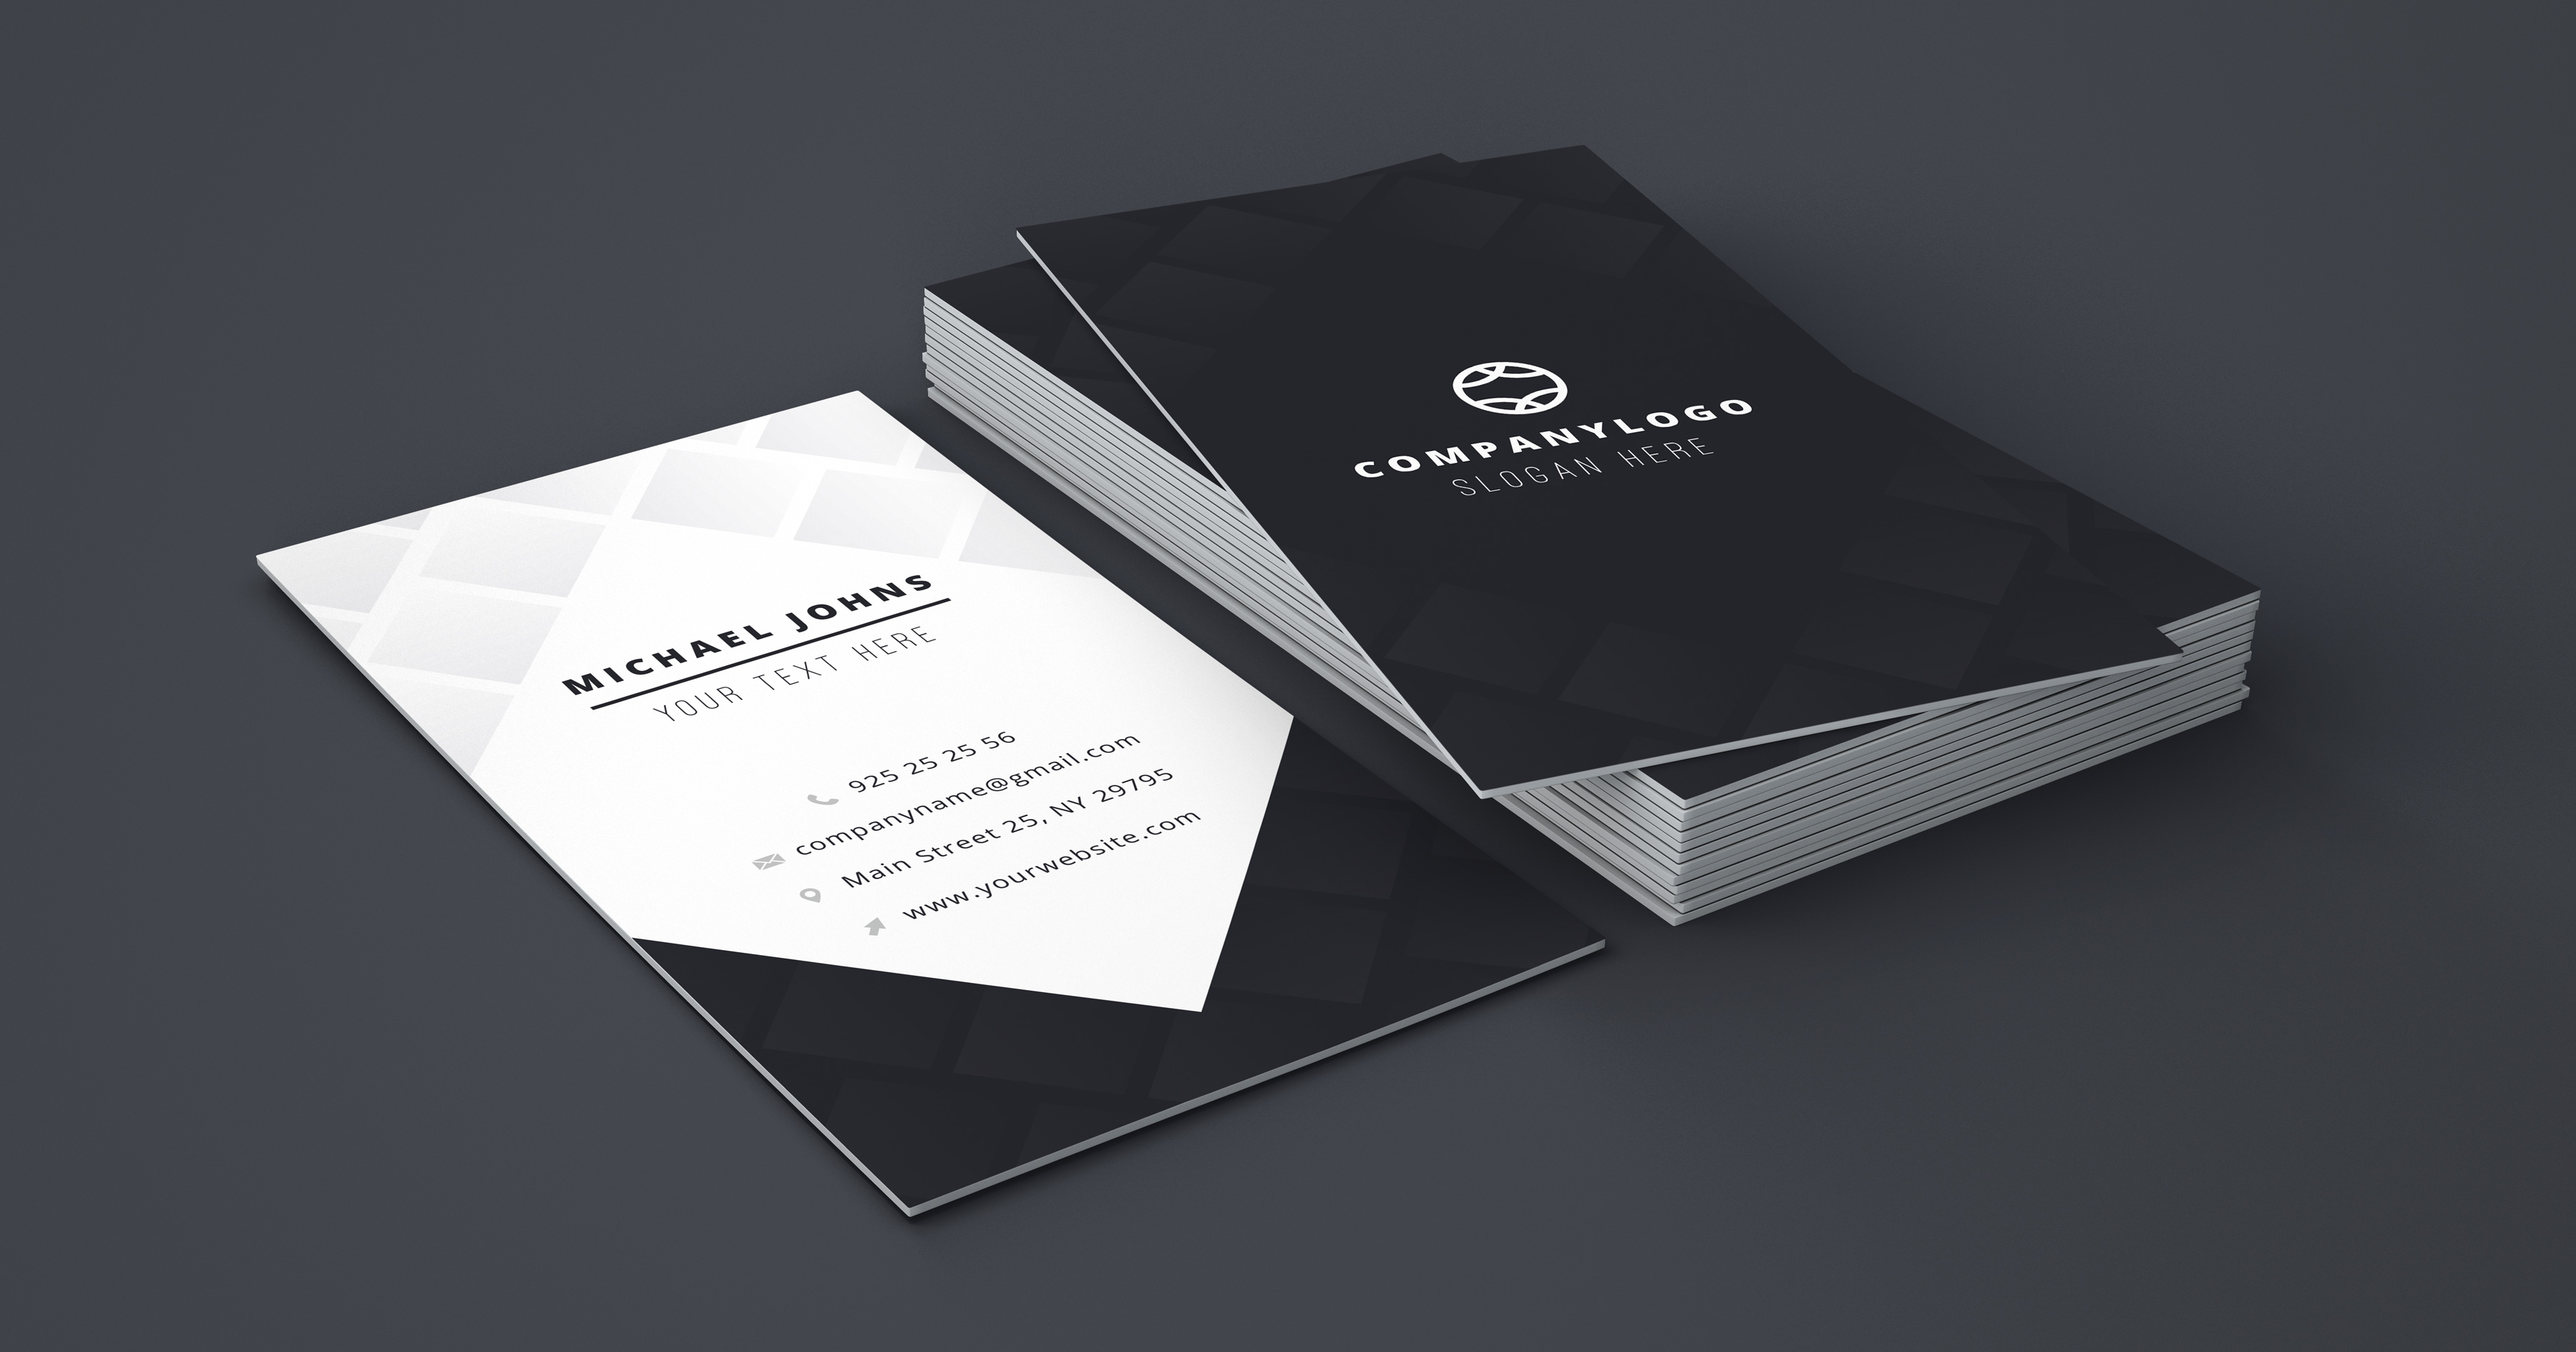 I will design unique business cards for you